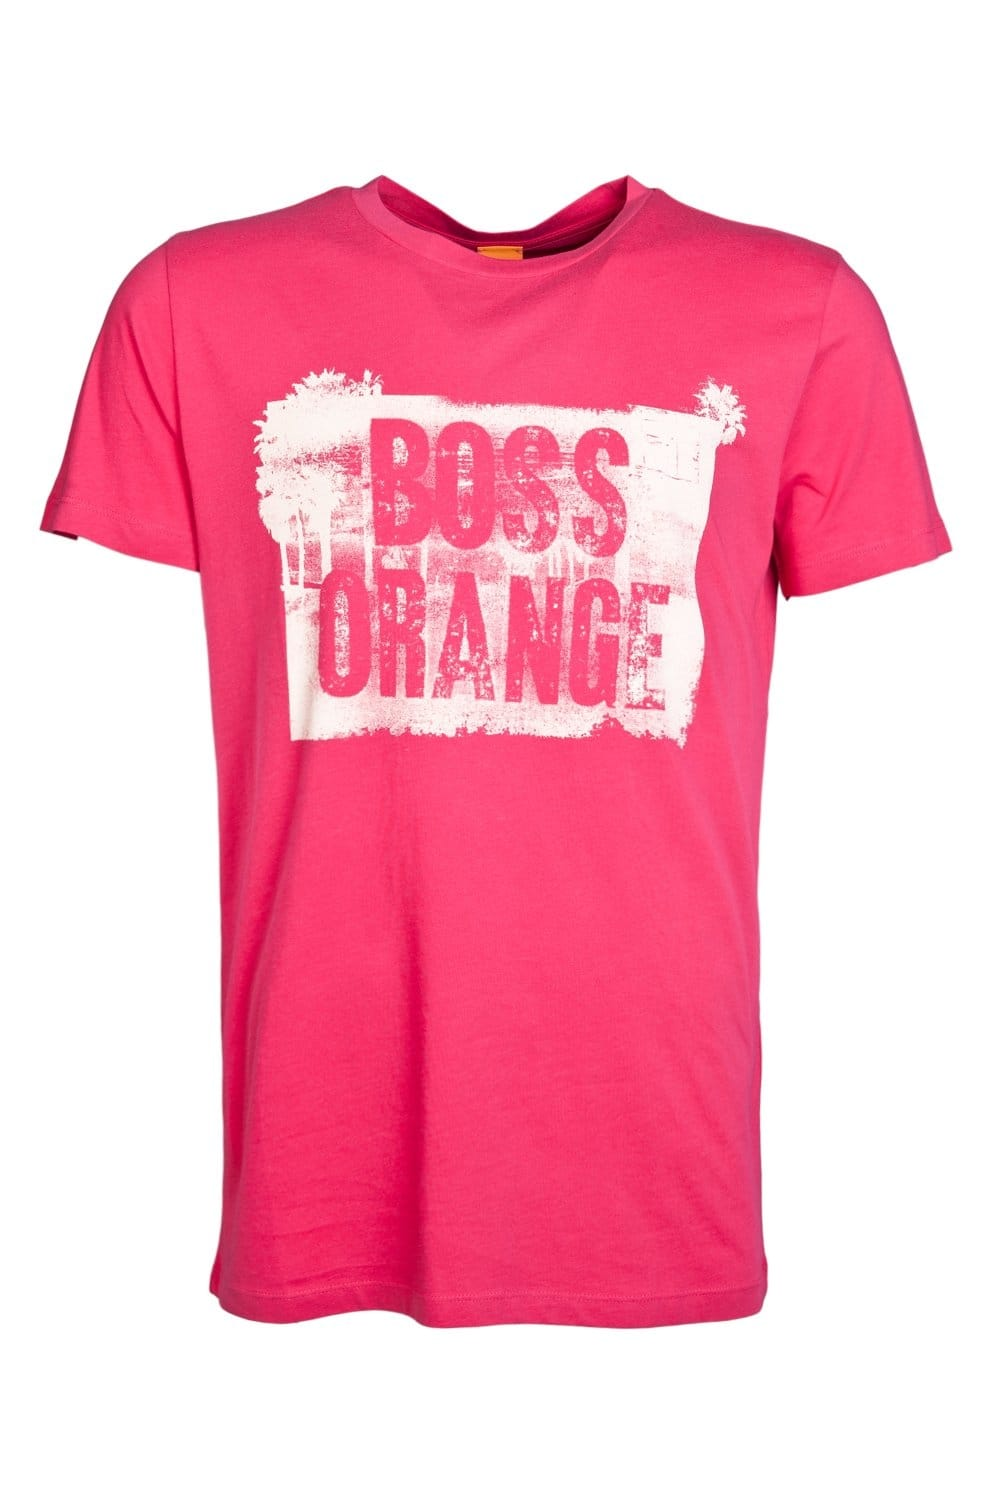 buy good On Clearance uk cheap sale HUGO BOSS ORANGE Round Neck T-shirt in White and Pink TEMYO 1 50283637